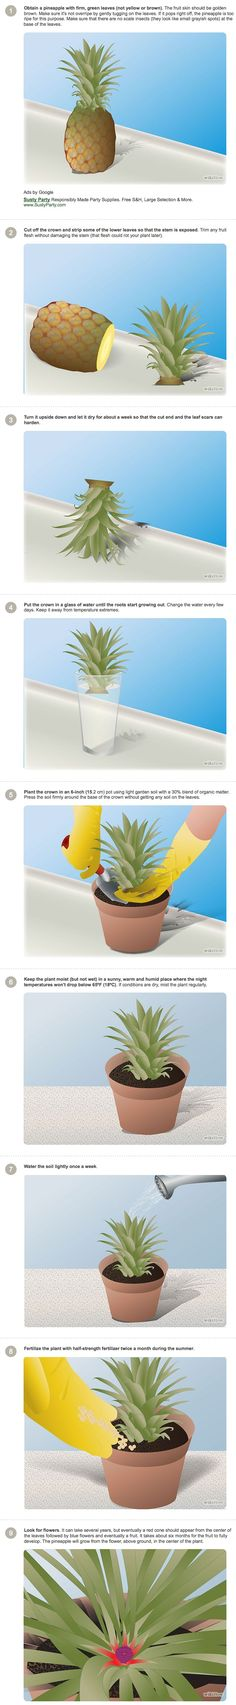 How to grow a pineapple tree